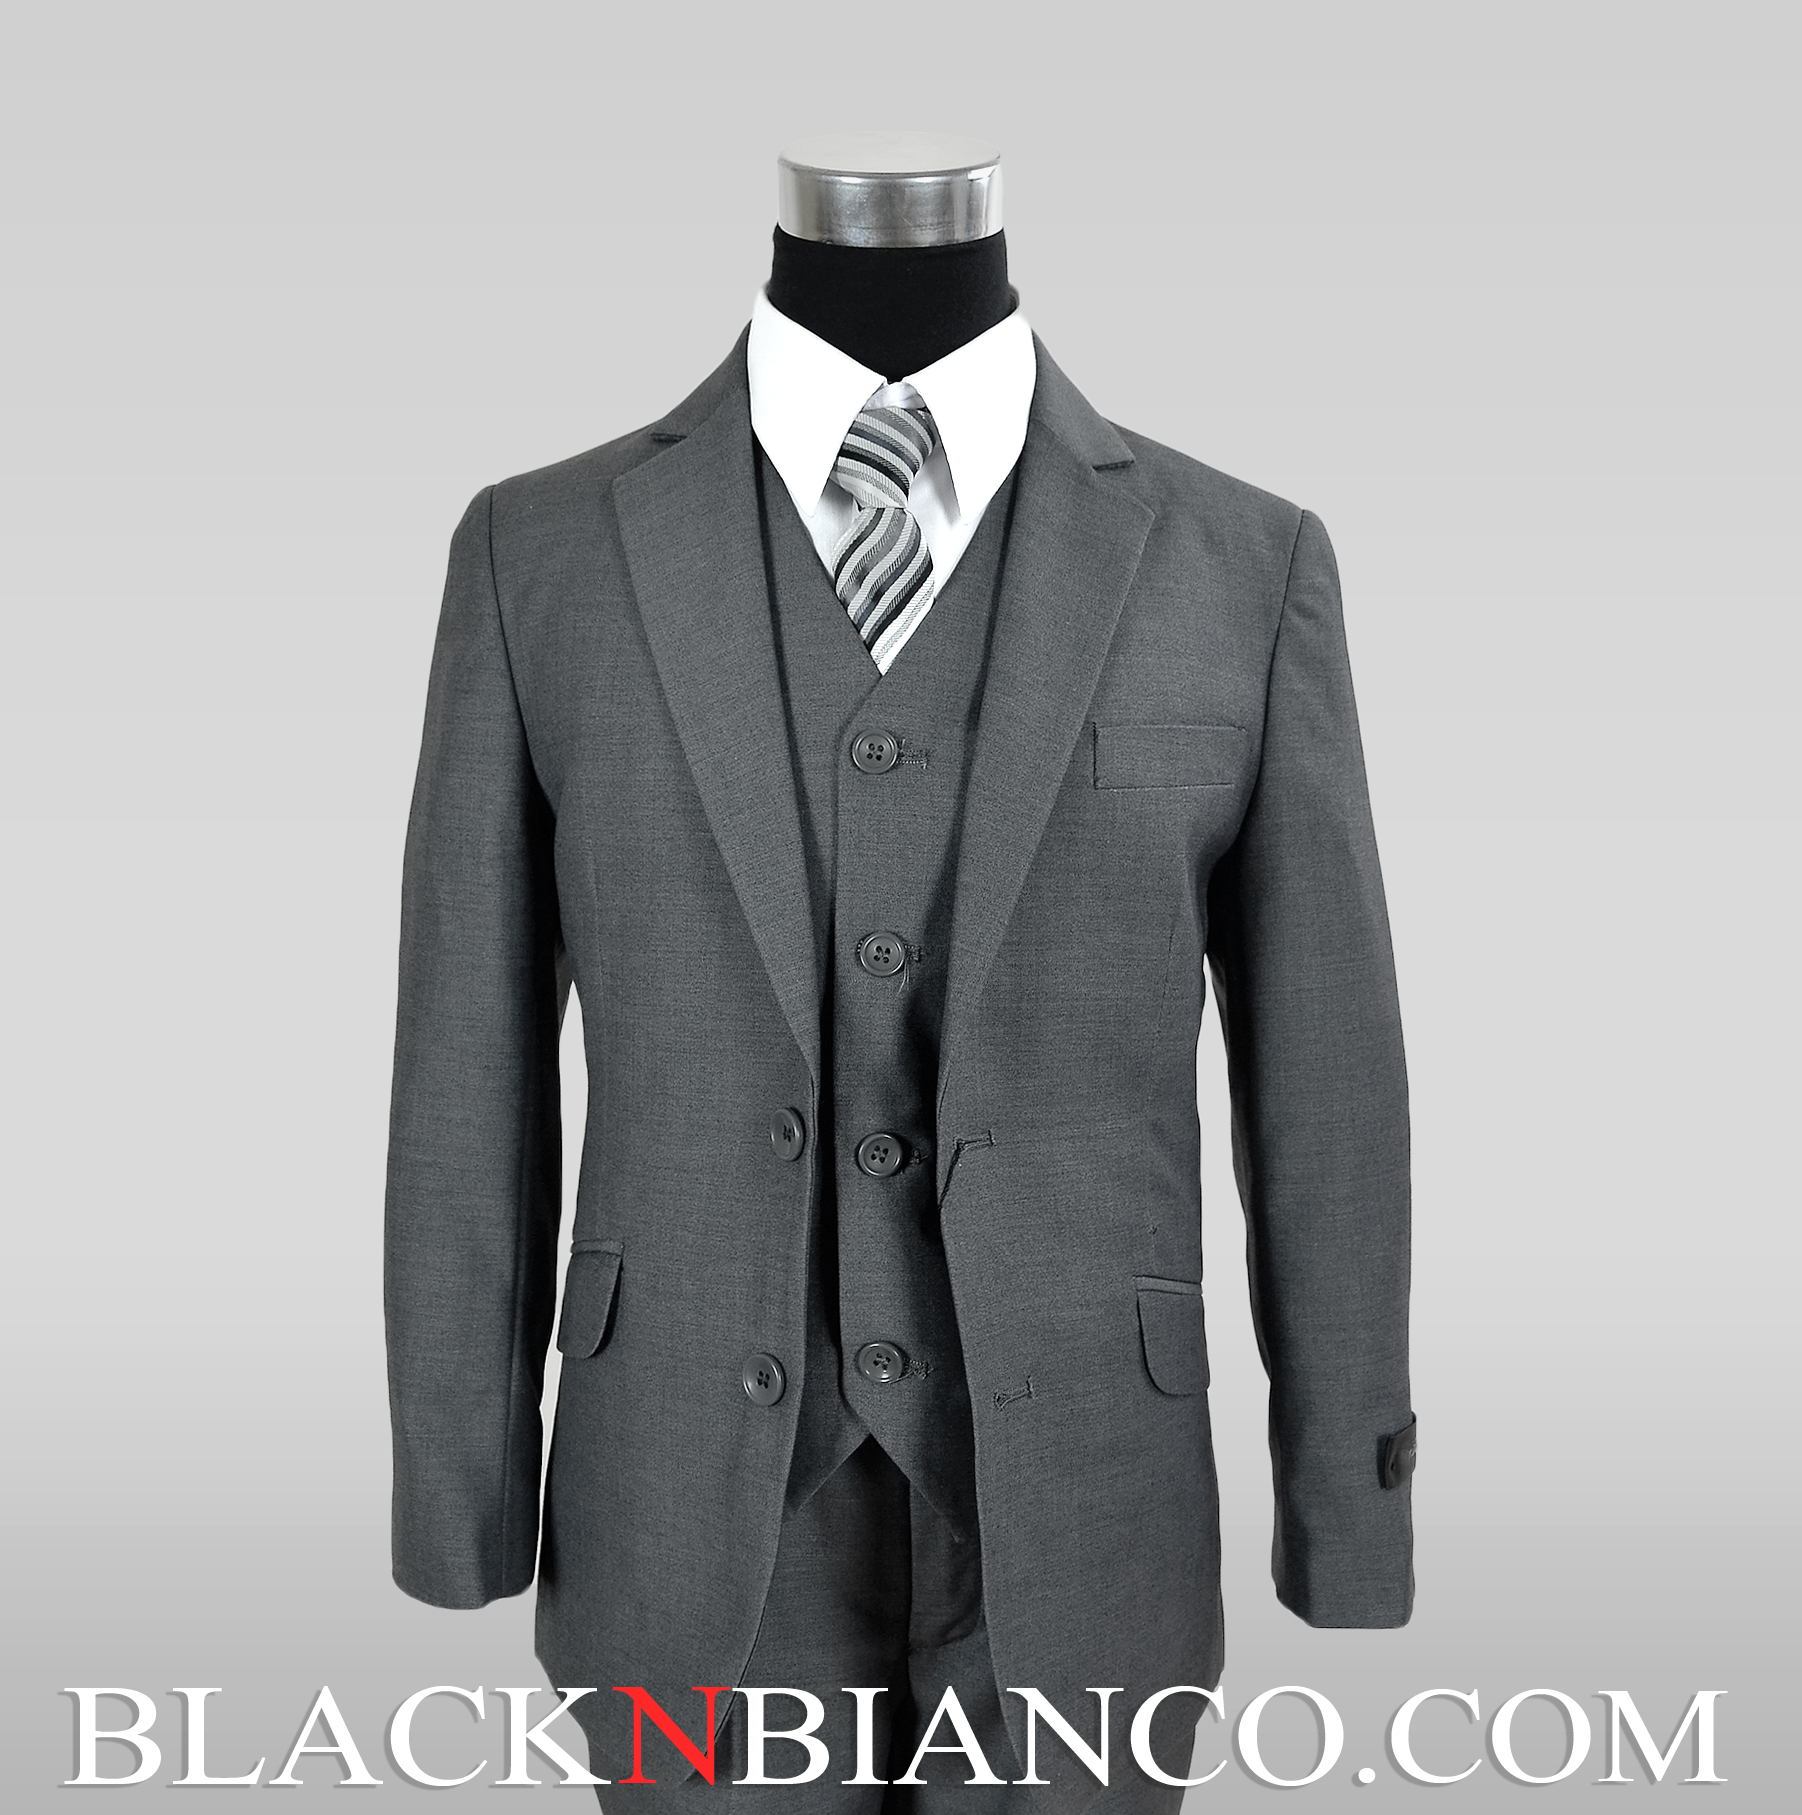 This medium grey kids suit comes in sizes 4 - 20 and is crafted by AFT. It is also a five piece suit offering, a white dress shirt with lay down collar, matching vest, dress tie, and the two button jacket.